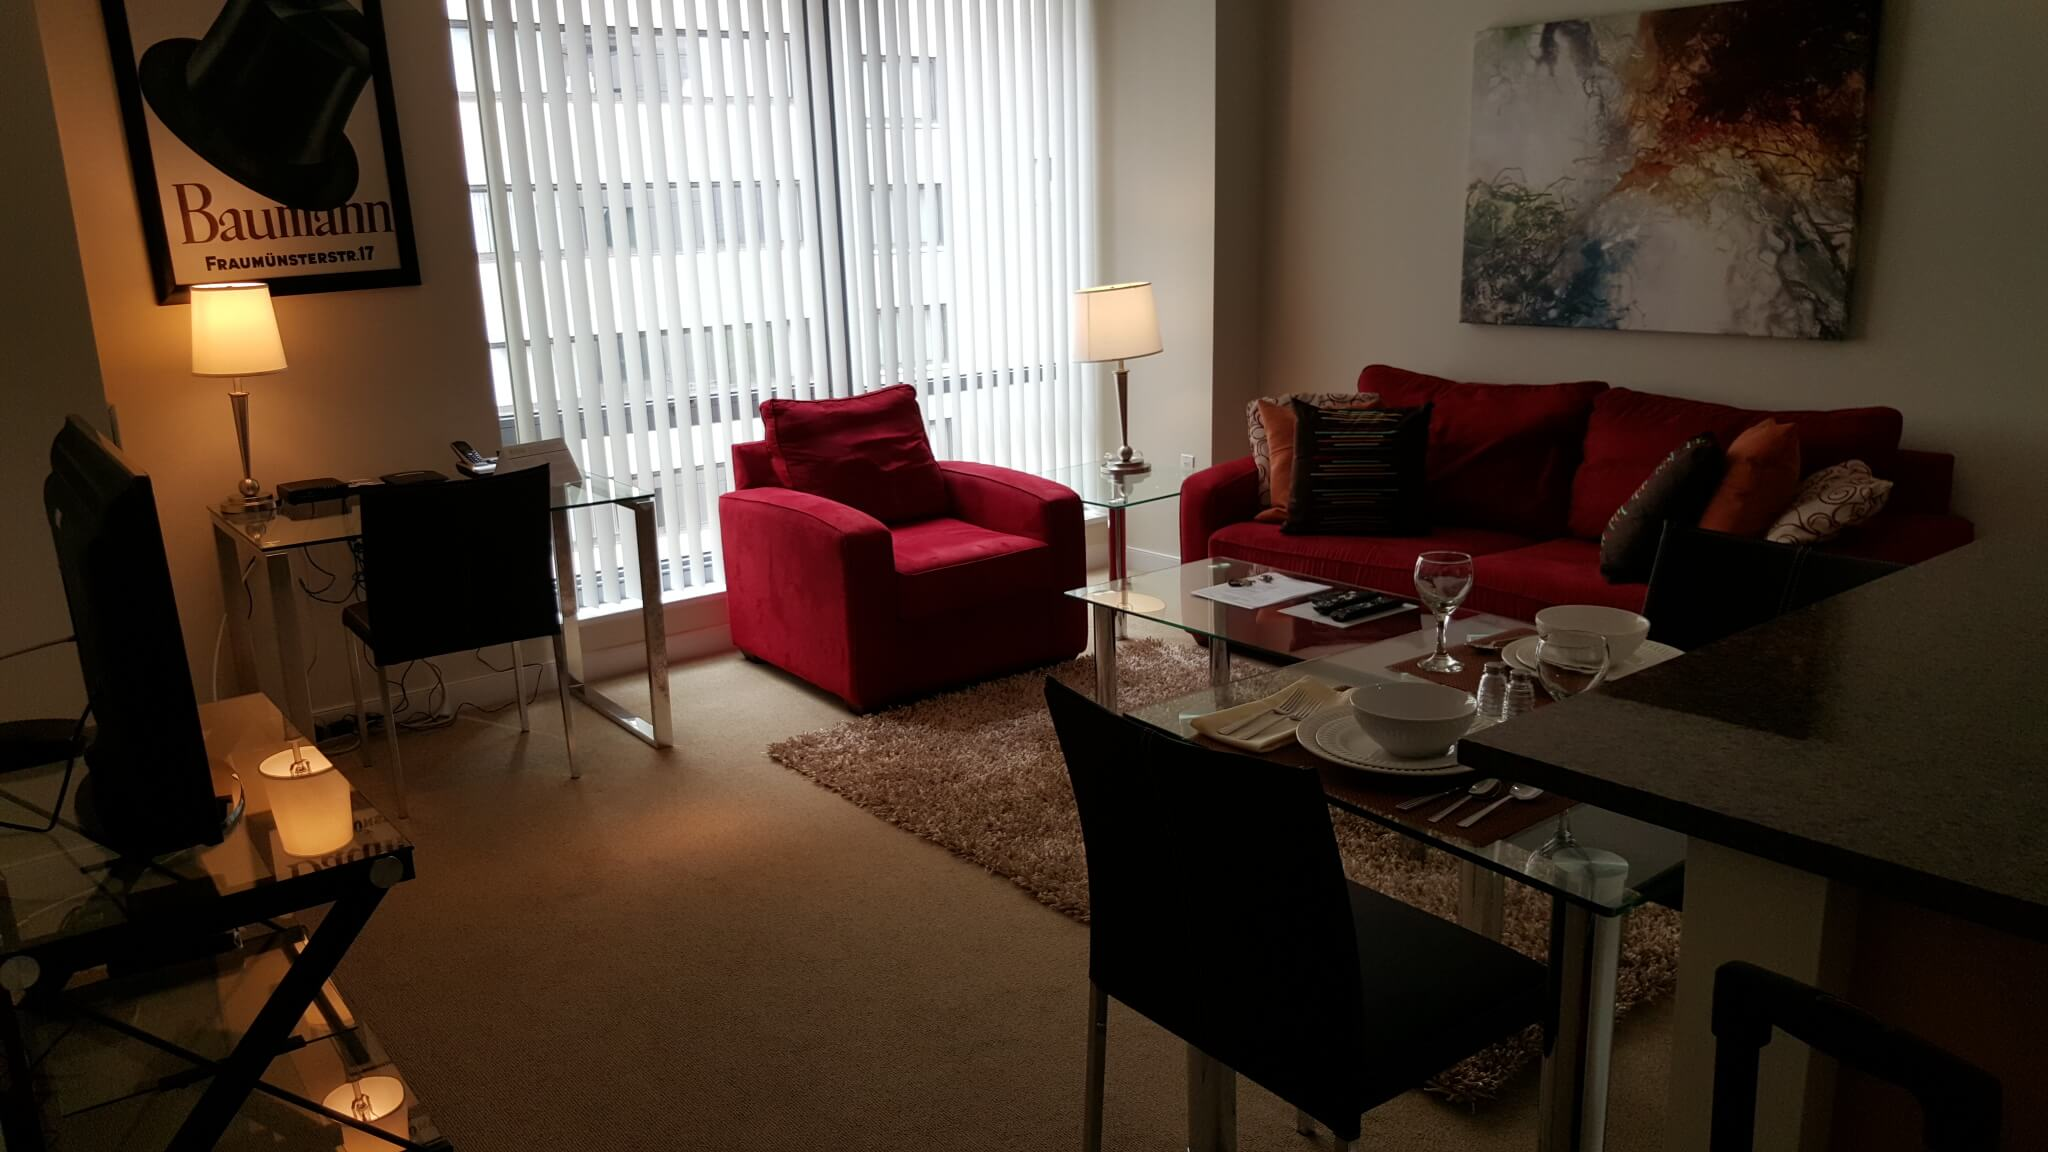 Beacon Hill Furnished 1 Bedroom Apartment For Rent 7380 Per Month Rental Id 3161939